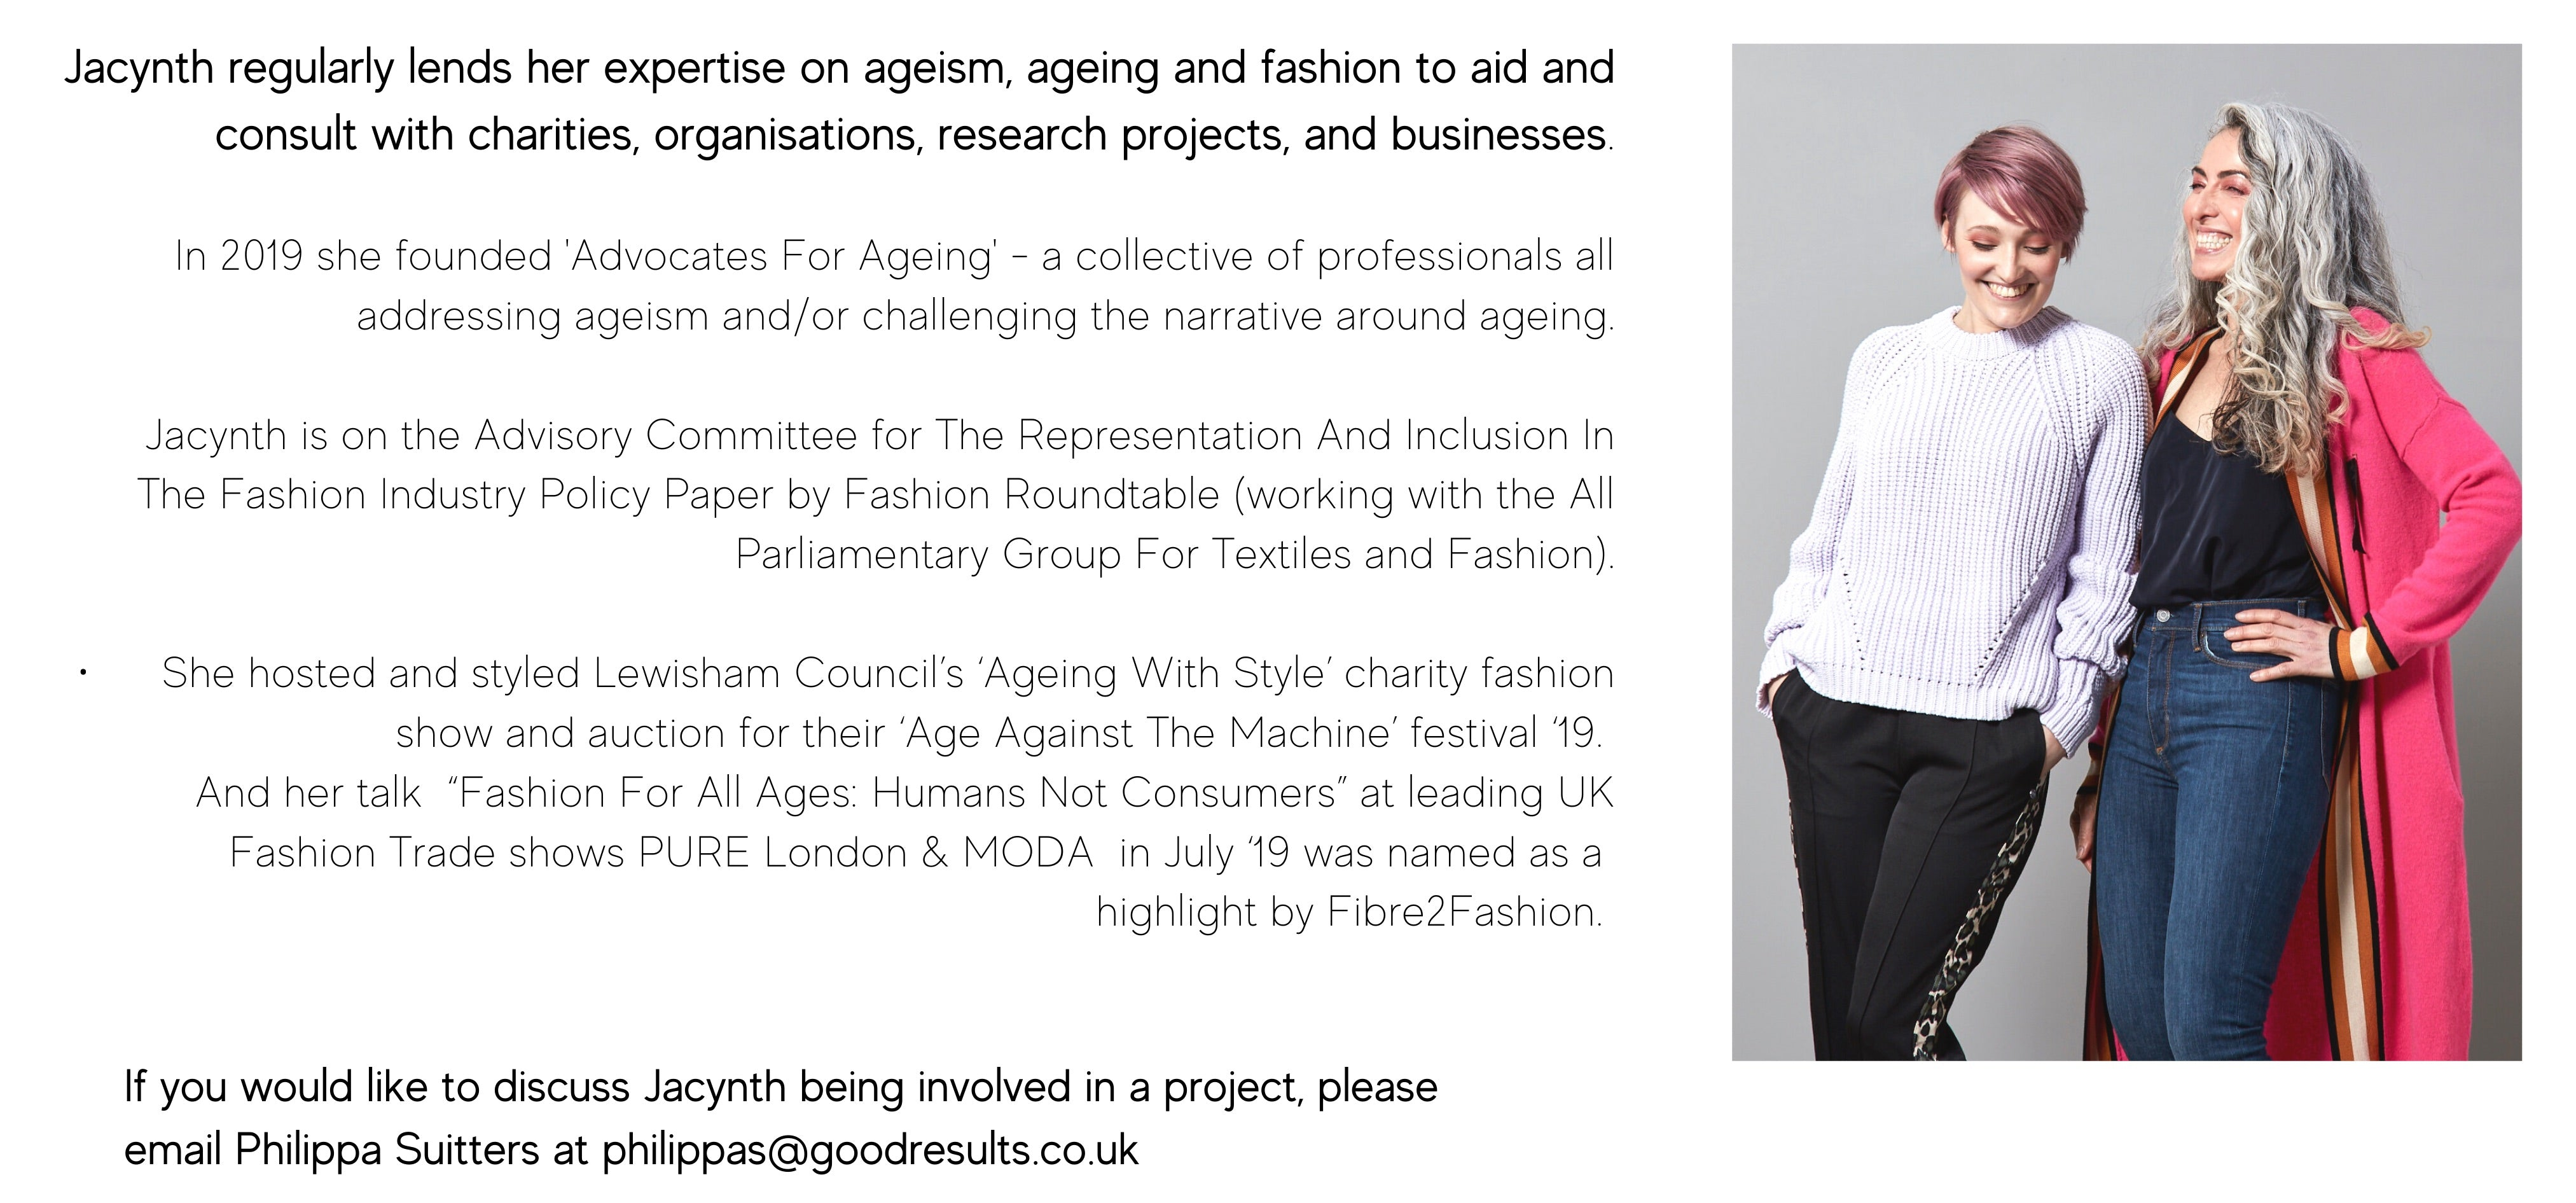 "Jacynth regularly lends her expertise on ageism, ageing and fashion to aid and consult charities, organisations, research projects, and businesses.  In 2019 she founded 'Advocates For Ageing' - a collective of professionals all addressing ageism and/or challenging the narrative around ageing.   Jacynth is on the Advisory Committee for The Representation And Inclusion In The Fashion Industry Policy Paper by Fashion Roundtable (working with the All Parliamentary Group For Textiles and Fashion).  ·      She hosted and styled Lewisham Council's 'Ageing With Style' charity fashion show and auction for their 'Age Against The Machine' festival '19.  And her talk  ""Fashion For All Ages: Humans Not Consumers"" at leading UK Fashion Trade shows PURE London & MODA  in July '19 was named as a  highlight by Fibre2Fashion."